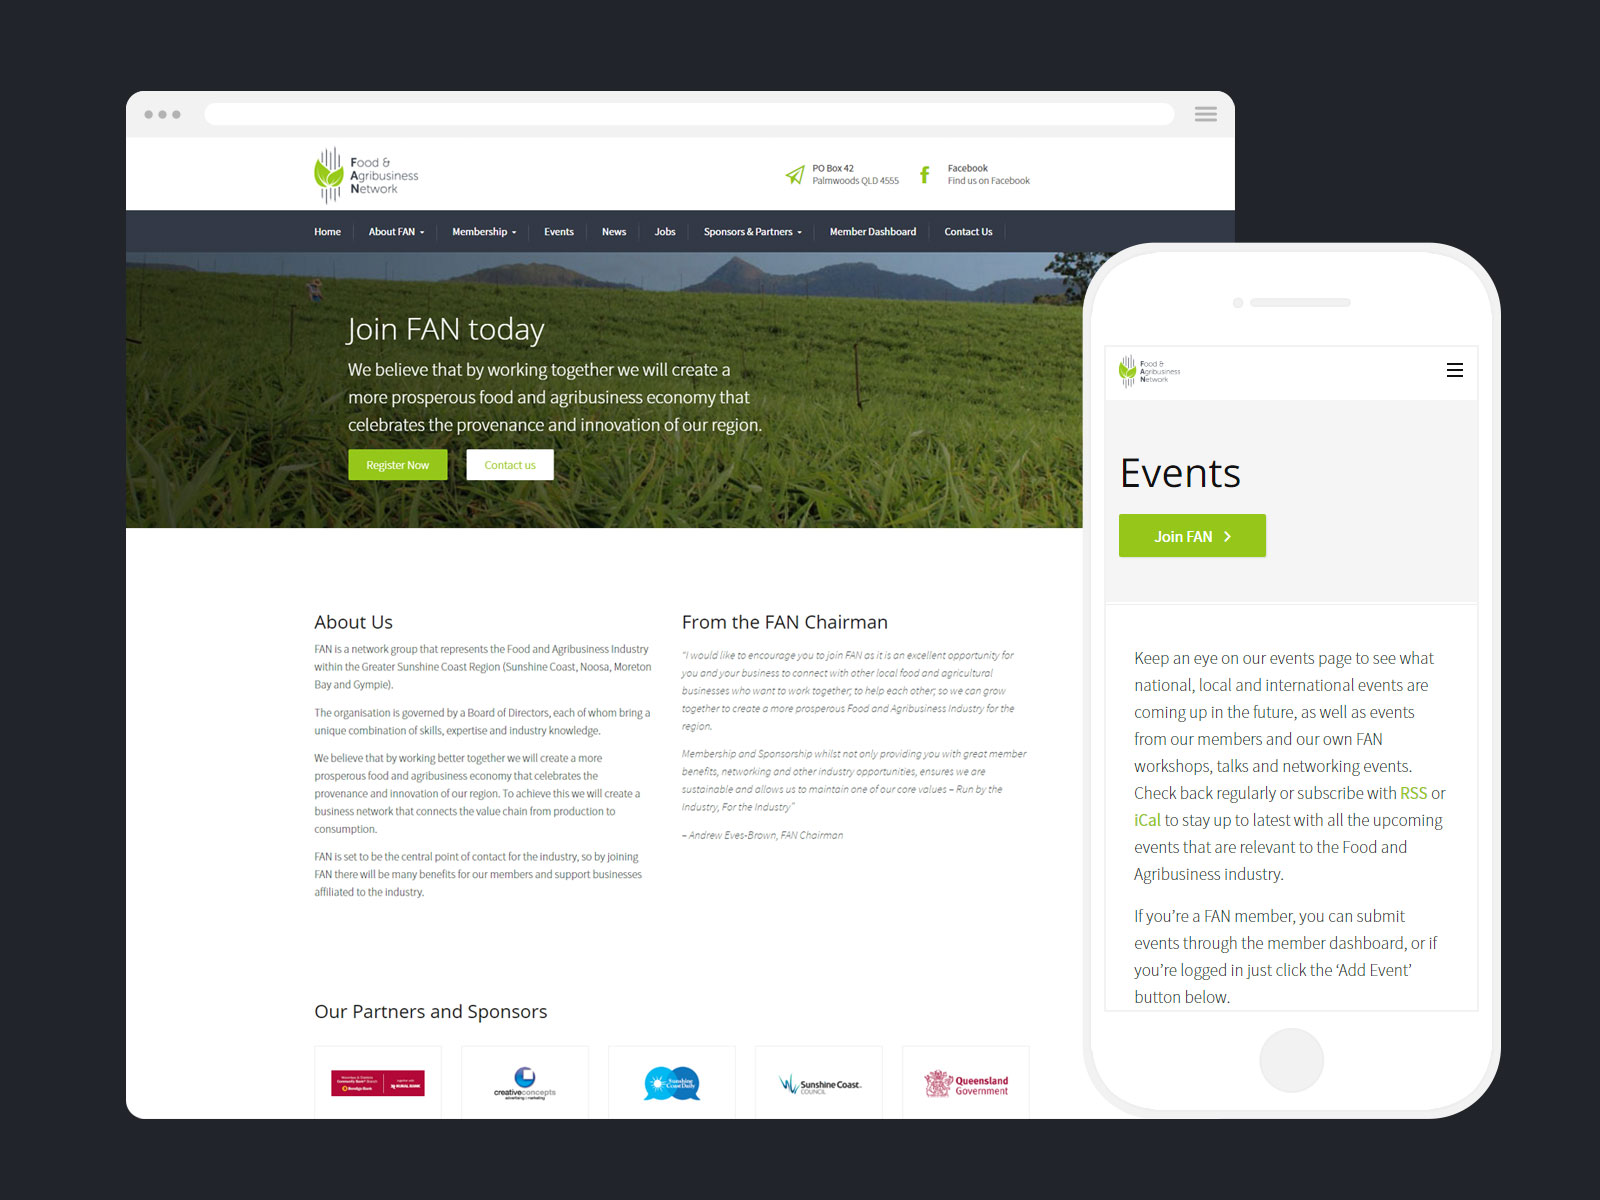 Web Design - Food & Agribusiness Network